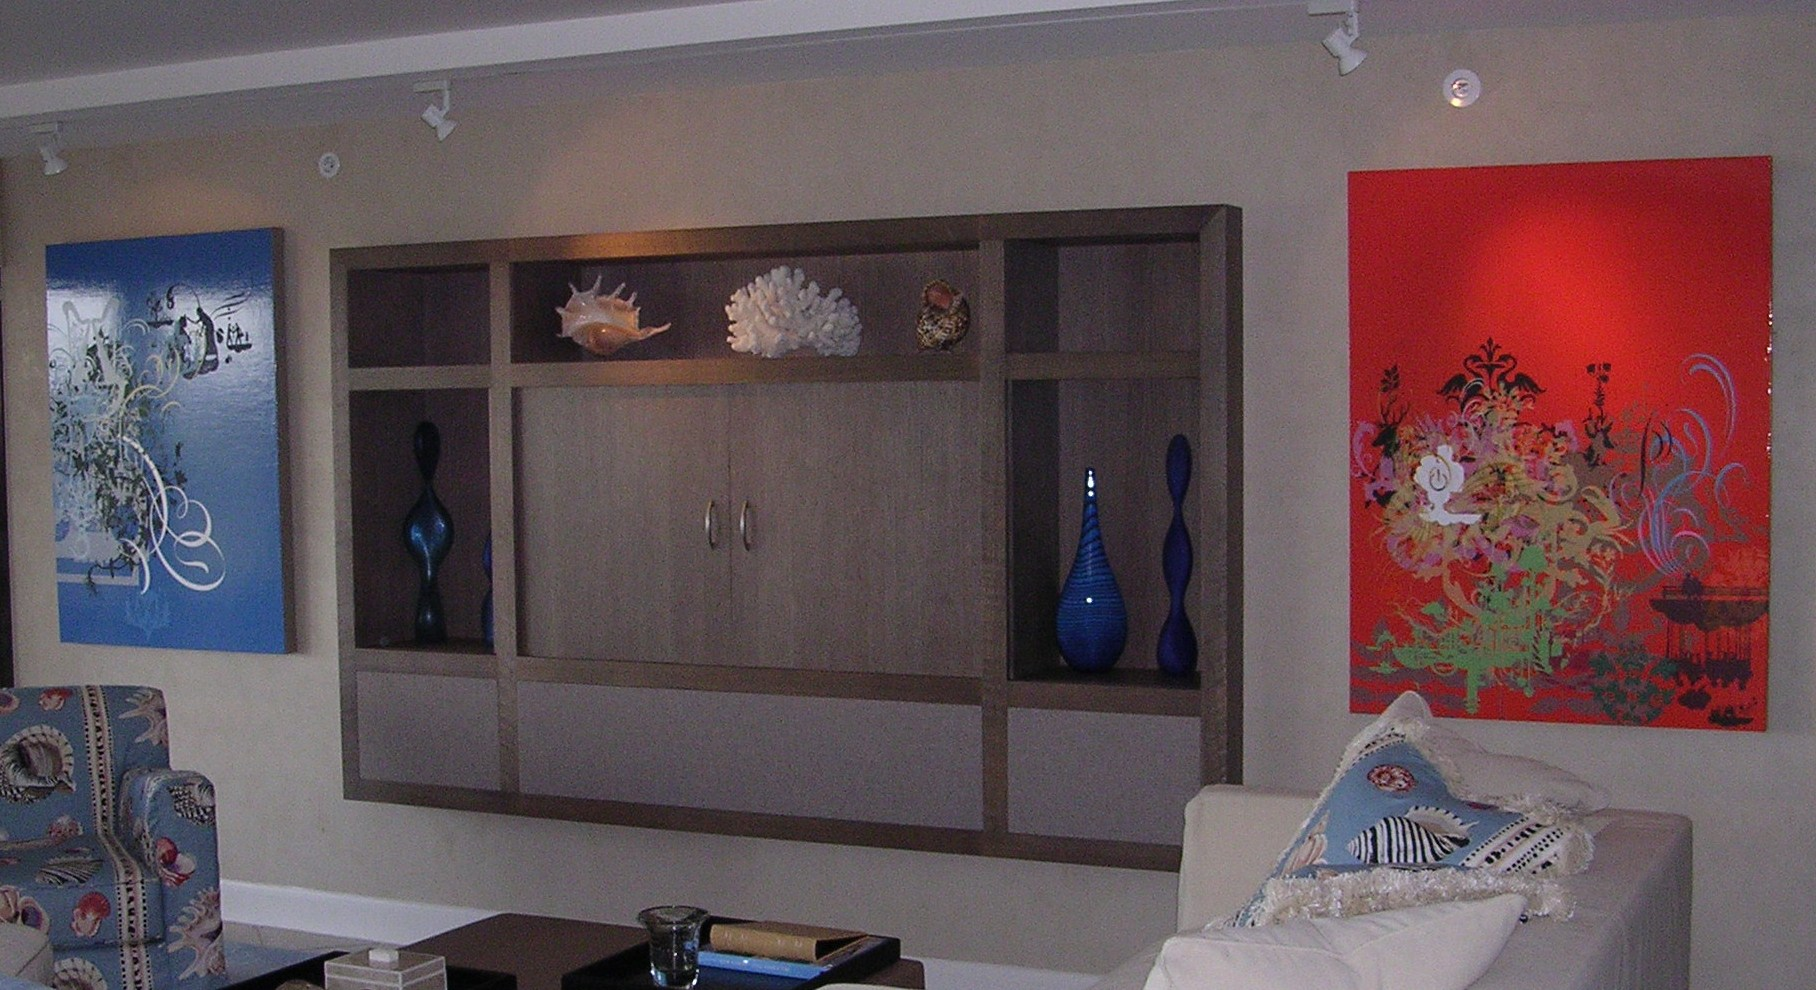 Wall Media Cabinet How To Use A Media Cabinet When Space Is Limited